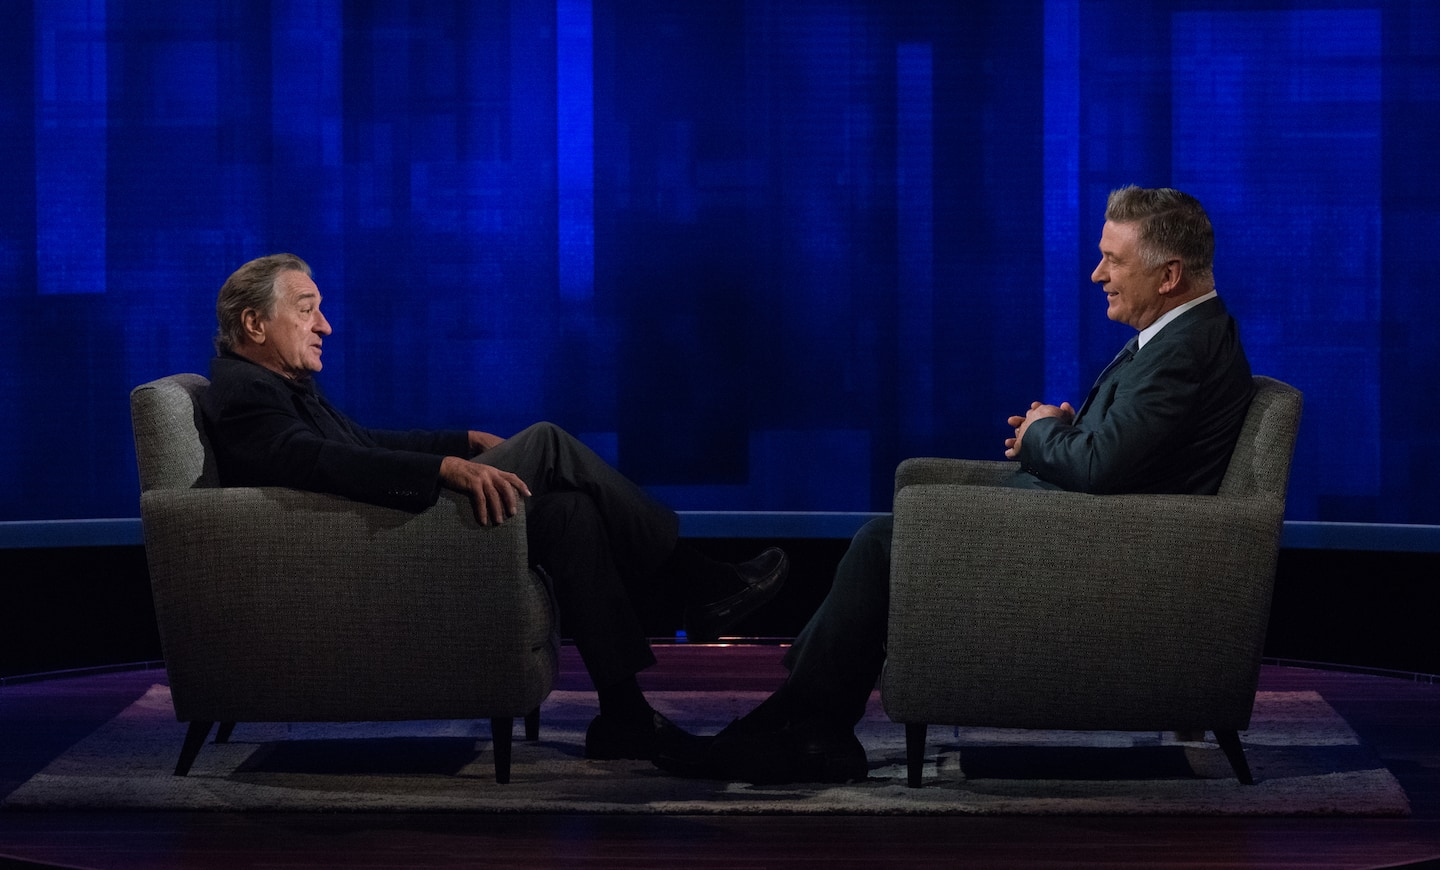 ABC bumps Alec Baldwin's low-rated talk show to Saturday nights